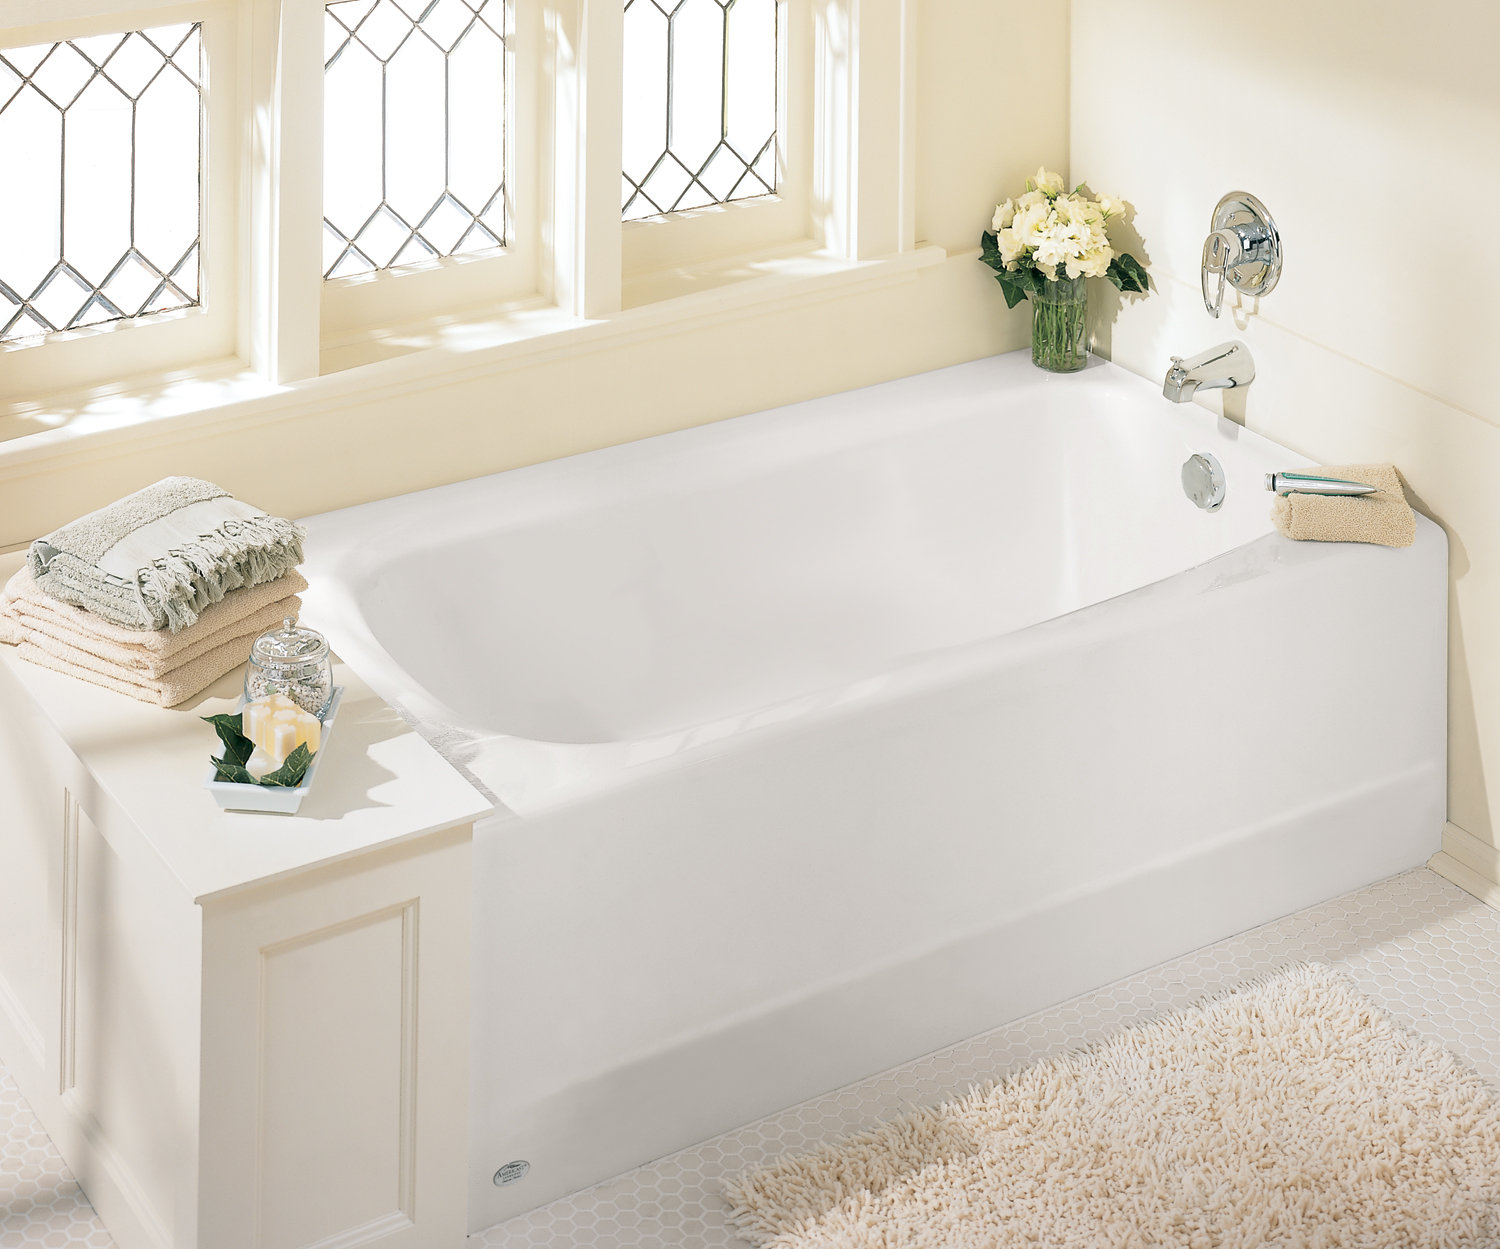 Bathtub buying guide tools home improvement for Bathtub in bathroom